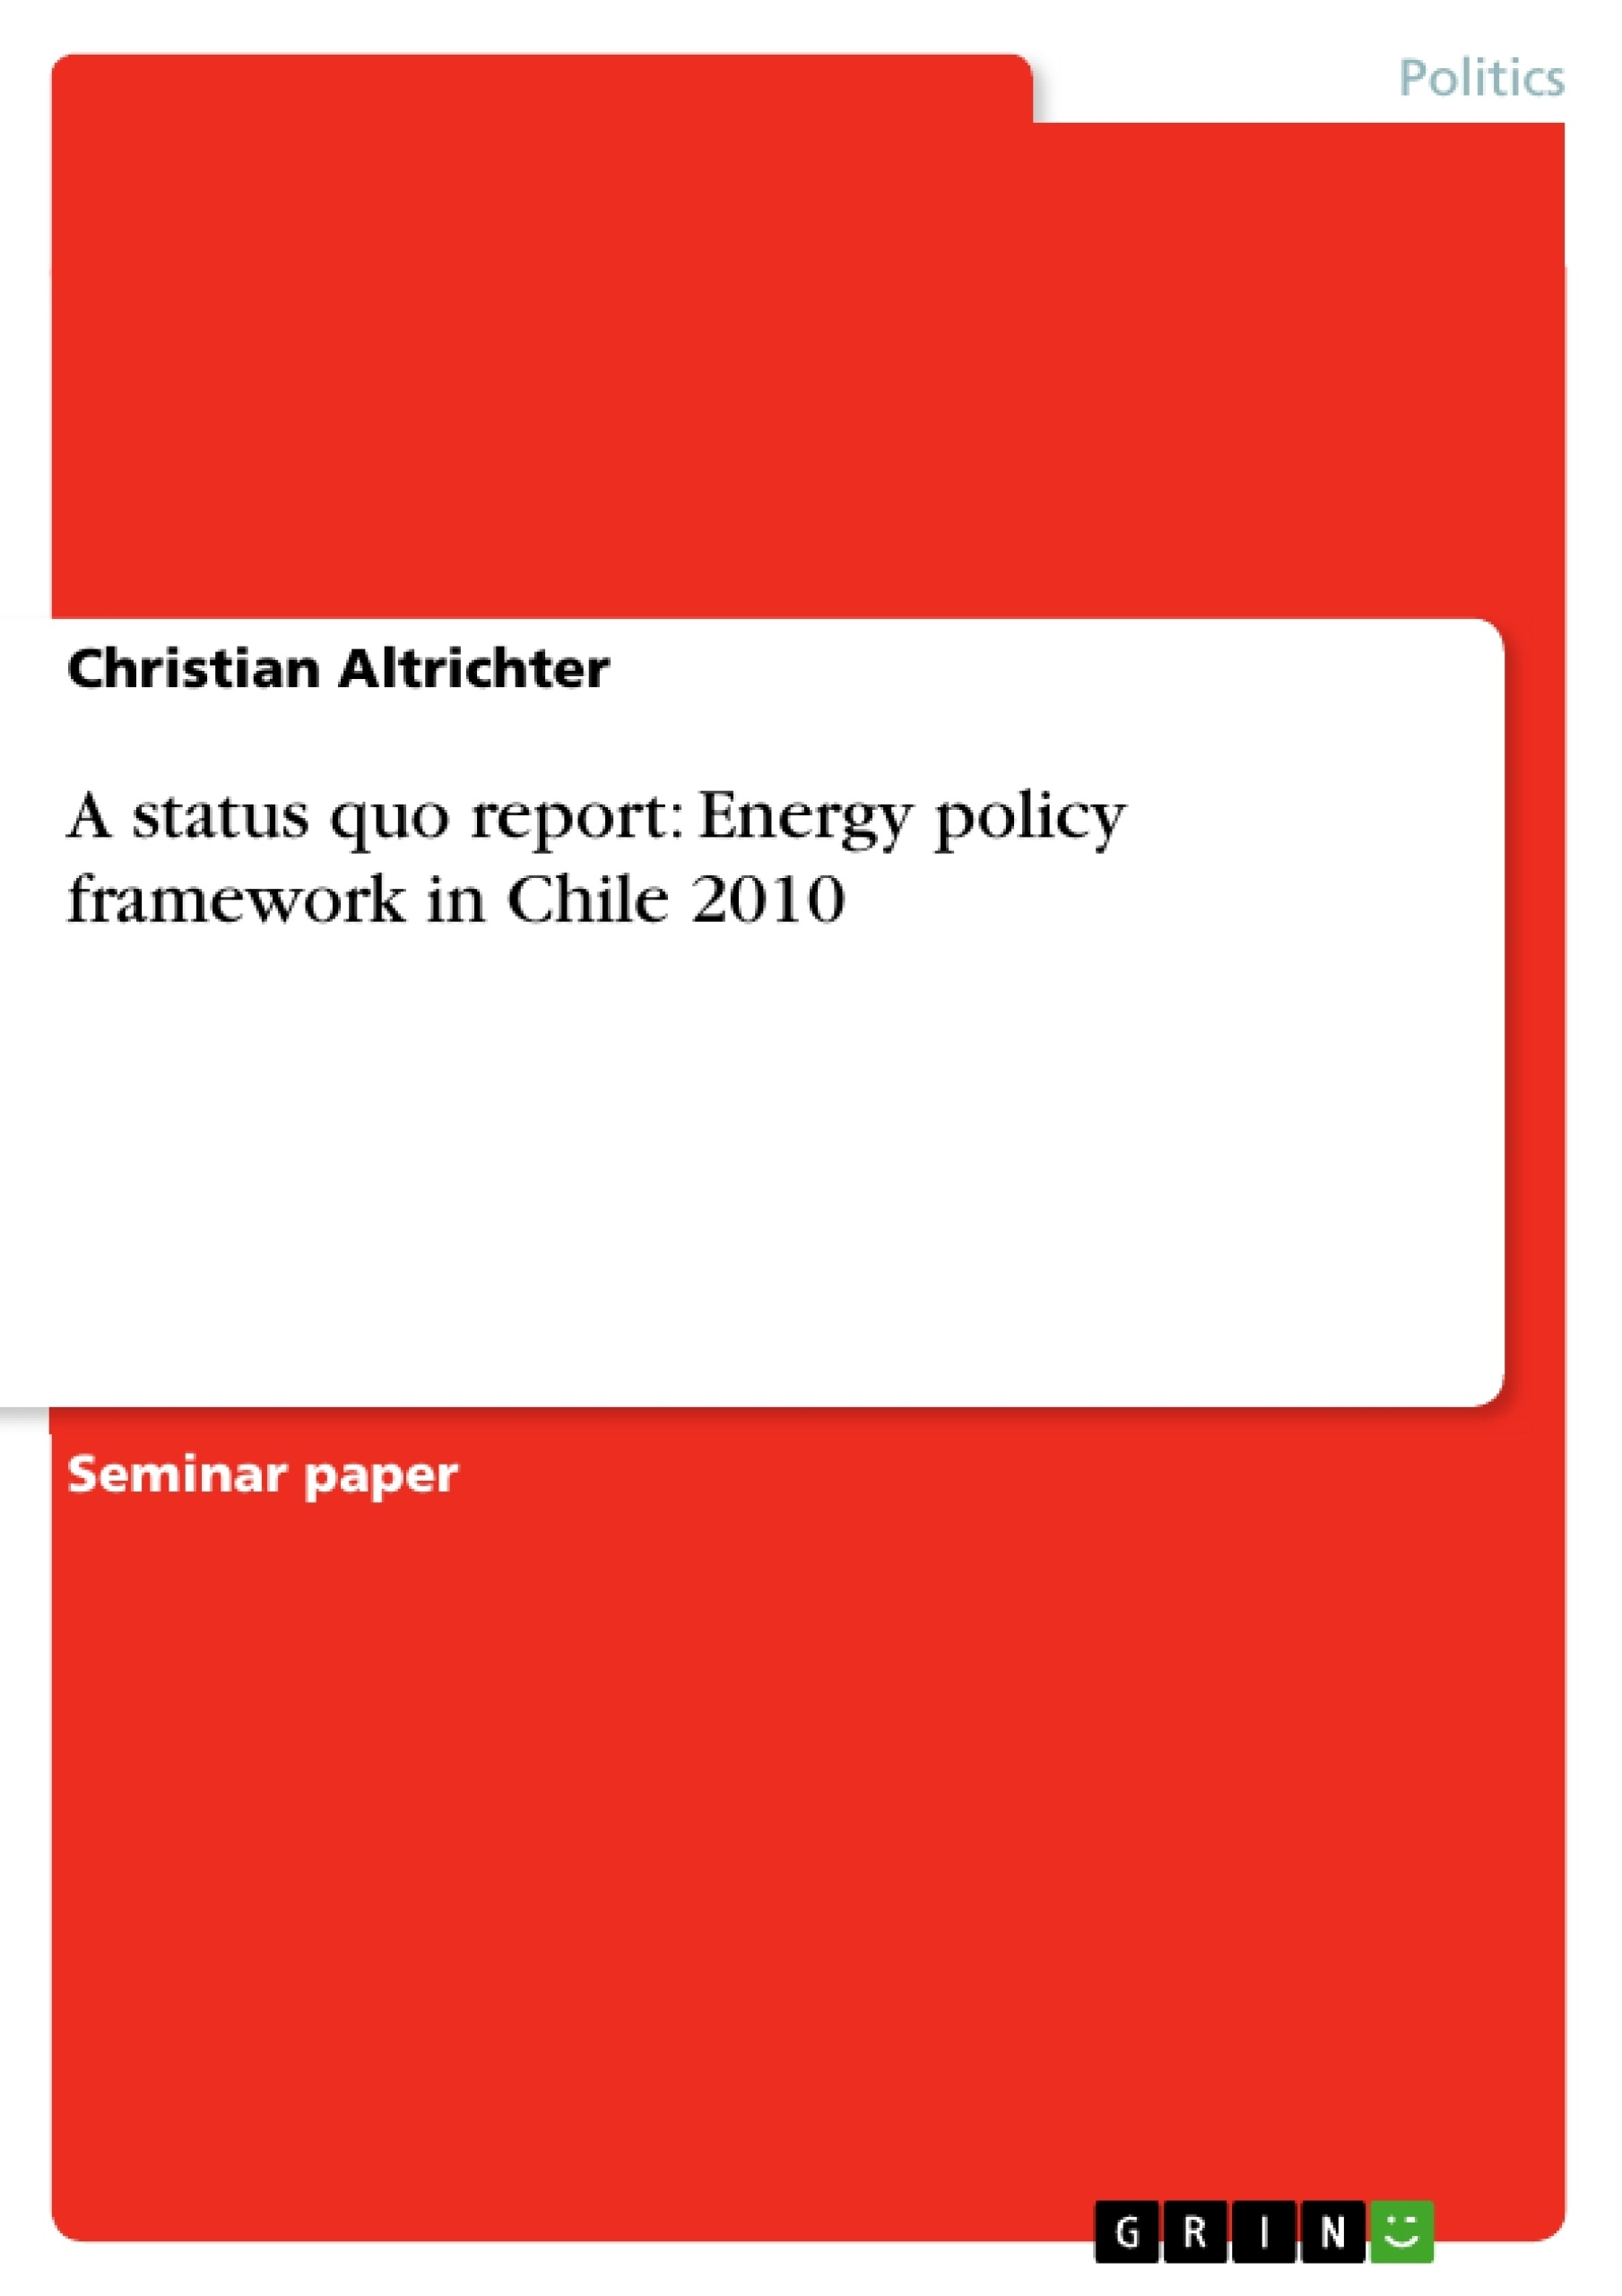 Title: A status quo report: Energy policy framework in Chile 2010